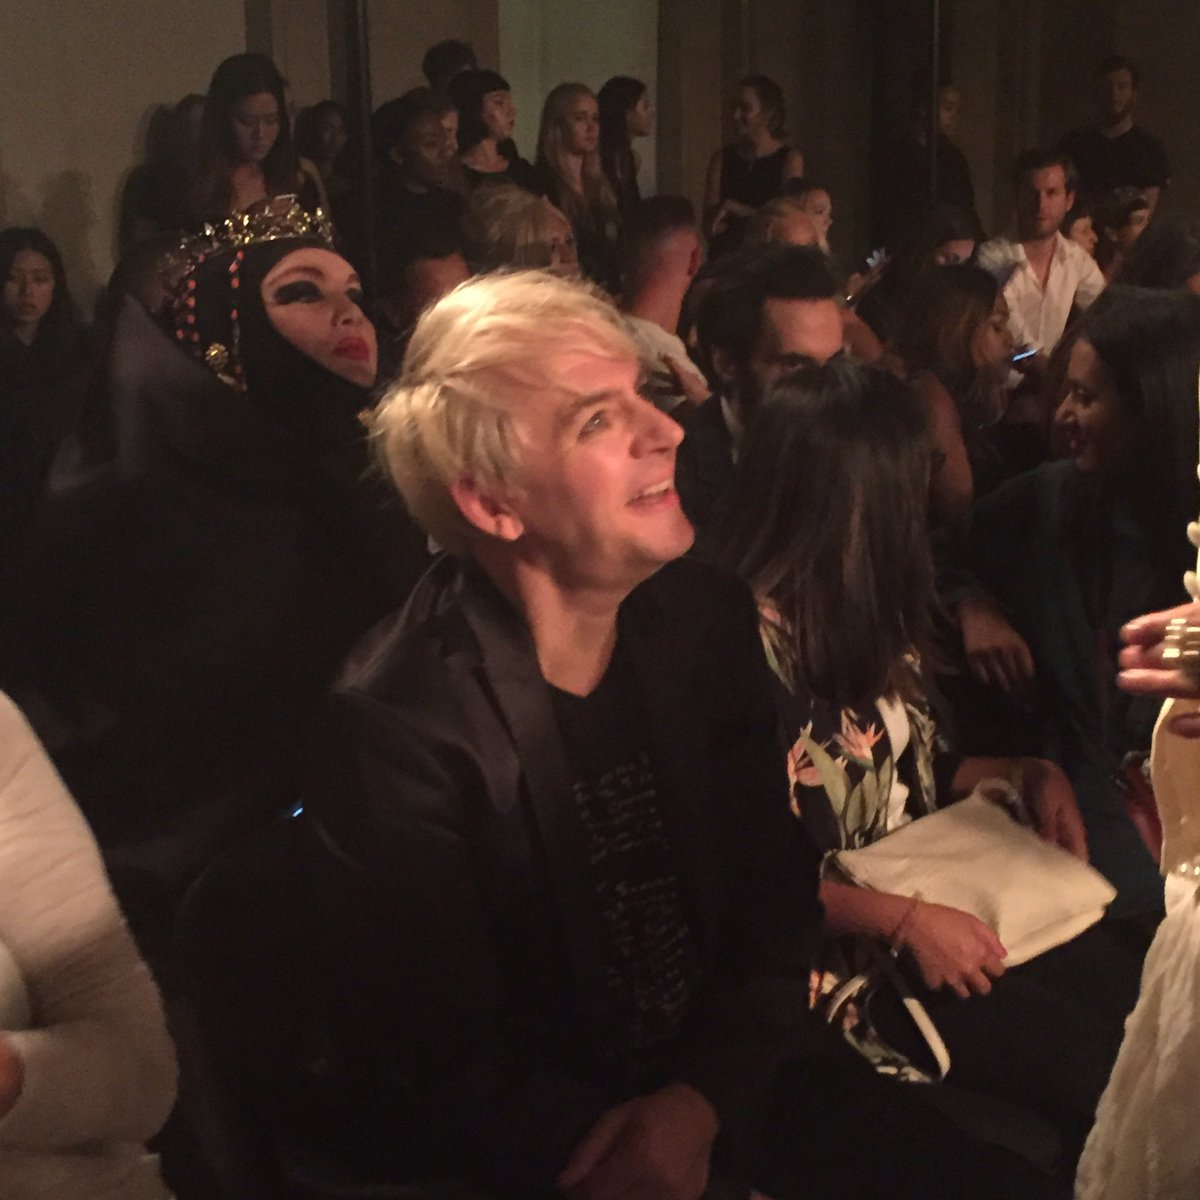 Nick Rhodes ready and waiting for @PAMHOGGcouture #FashionScout #ss17 https://t.co/k3KJBwDi6D